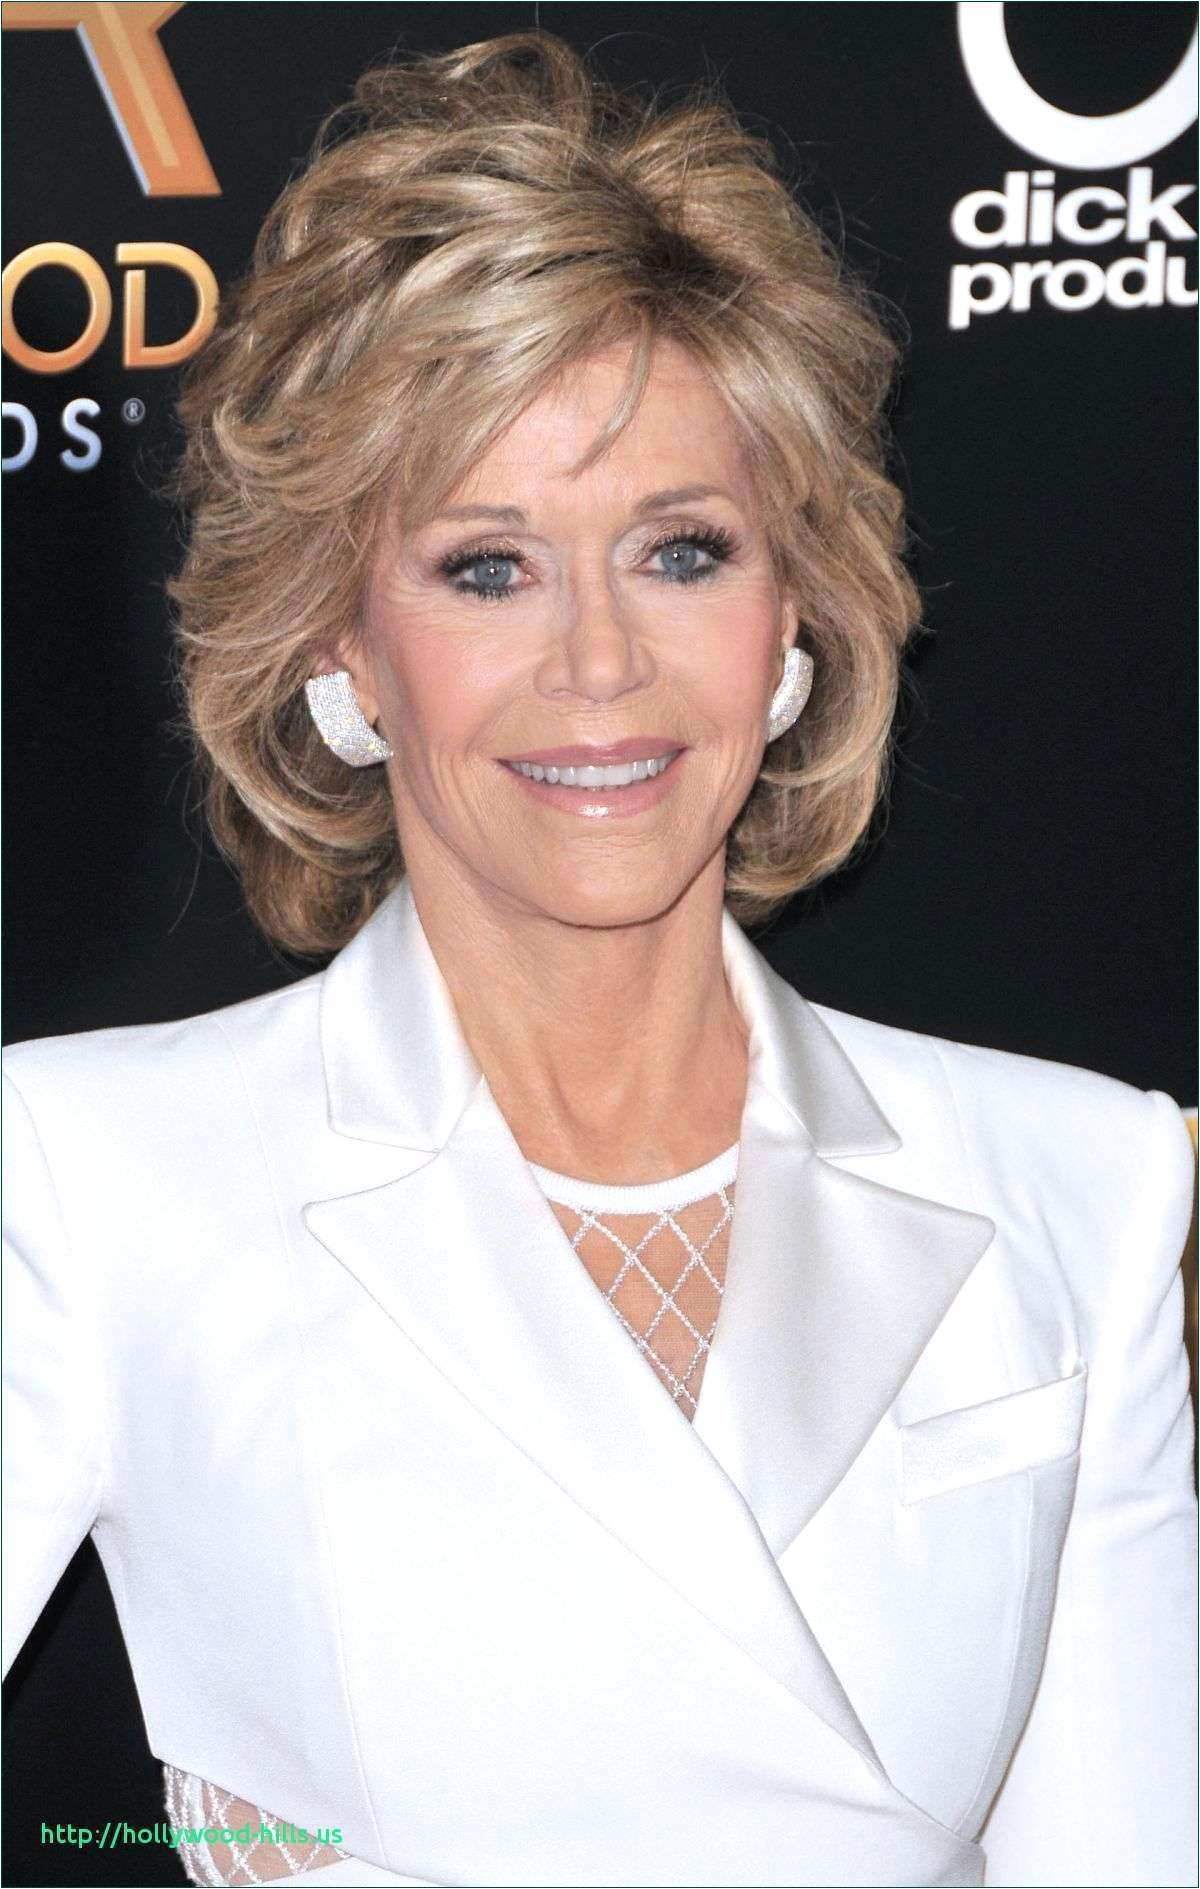 Jane Fonda Hairstyles for Over 60 Hottest D40o Hairstyle Inspiration Jane Fonda Hairstyles for Over